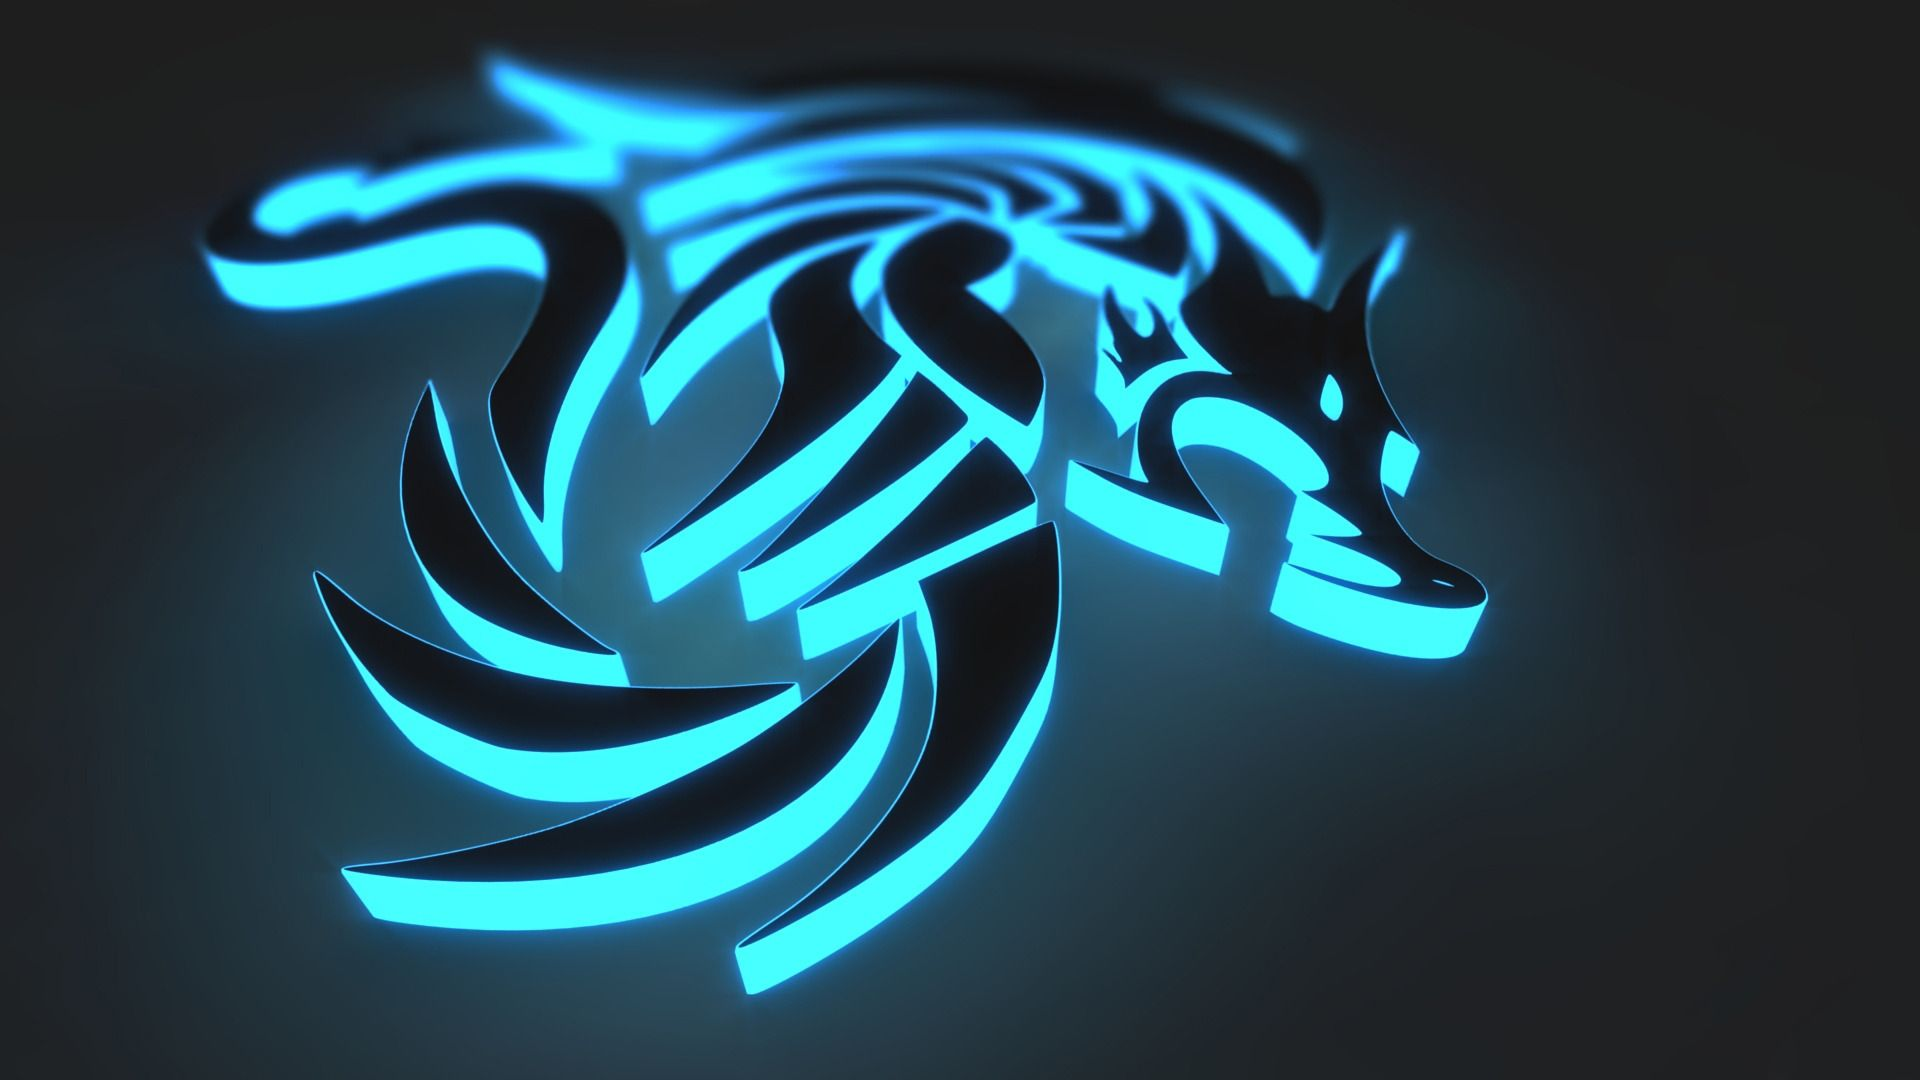 3d Wallpaper Free Download Download Dragon Logo 3d Hd Wallpaper Hd Wallpapers For Laptop Dragon Tattoo Wallpaper Neon Wallpaper